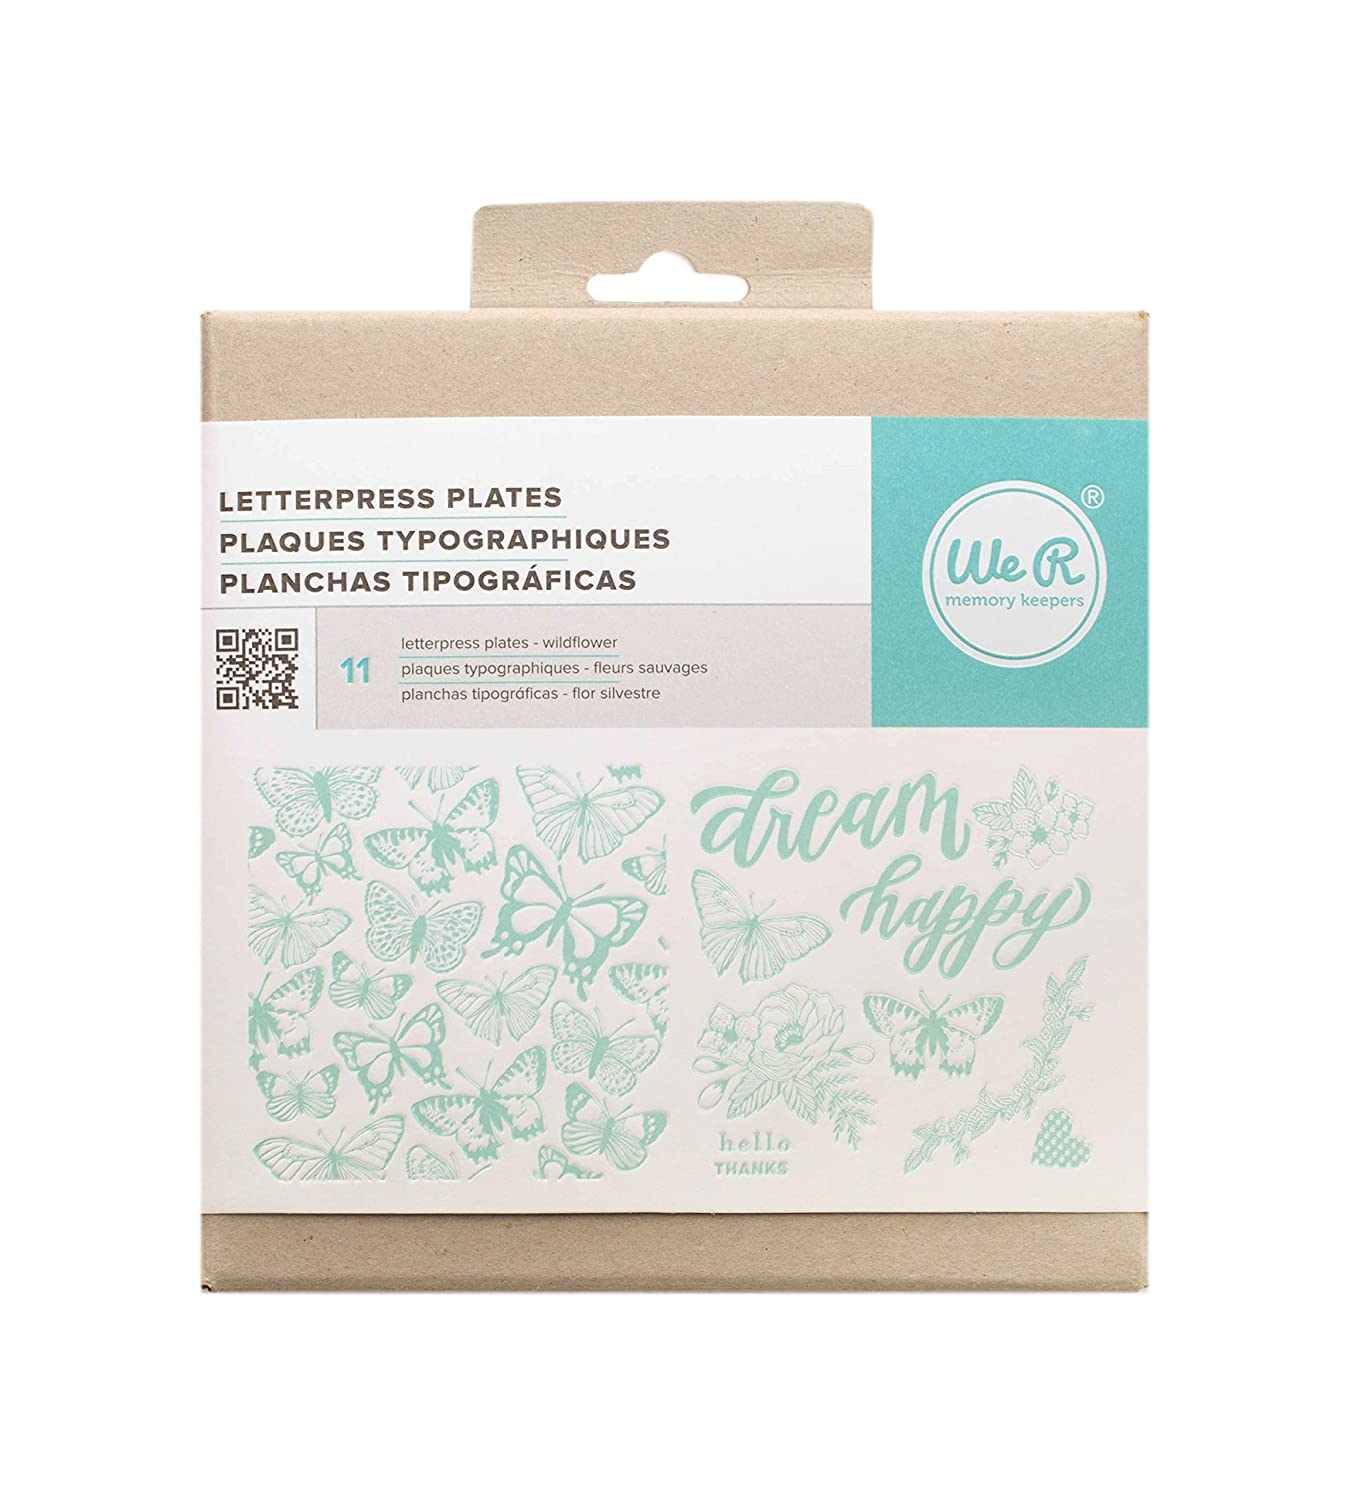 American Crafts 662693 11 Piece We R Memory Keepers Letterpress Printing Plates Wildflower